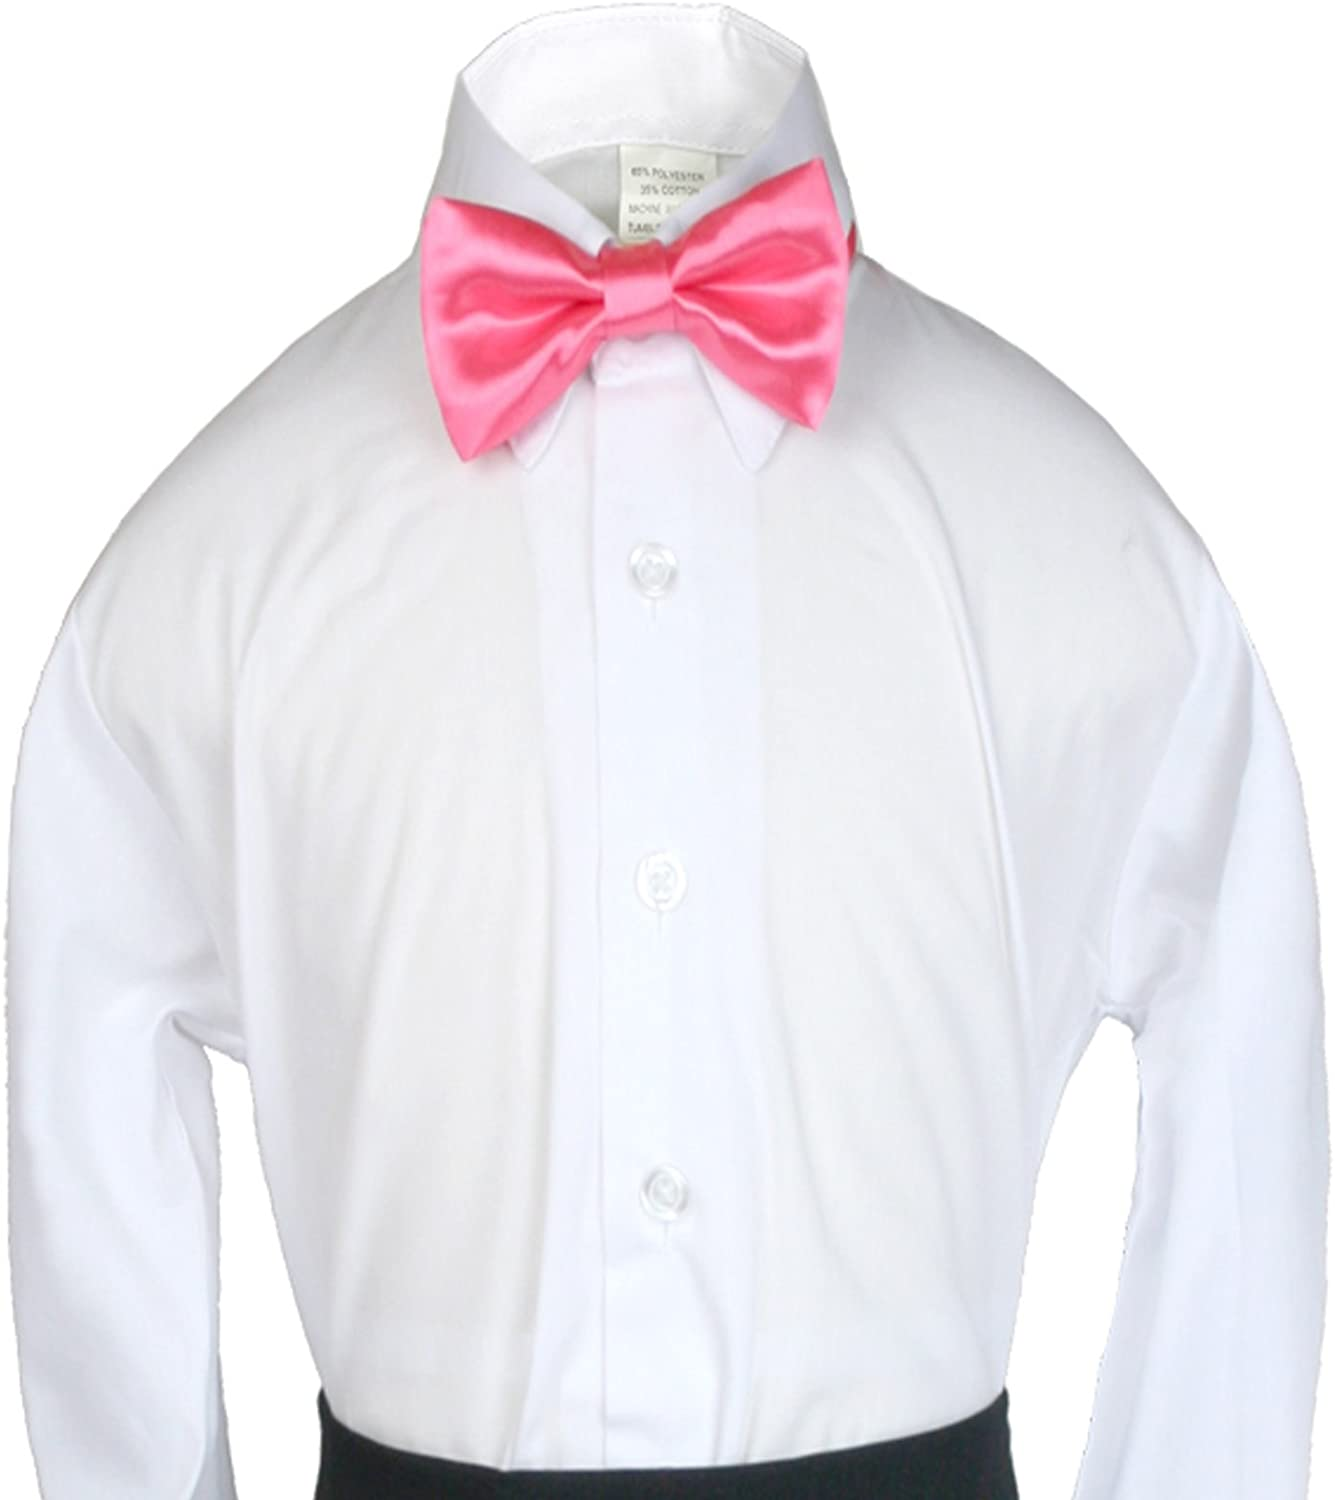 Unotux Boy Suits Tuxedo Formal Wedding Coral Red Satin Bow Tie from Baby to Teen